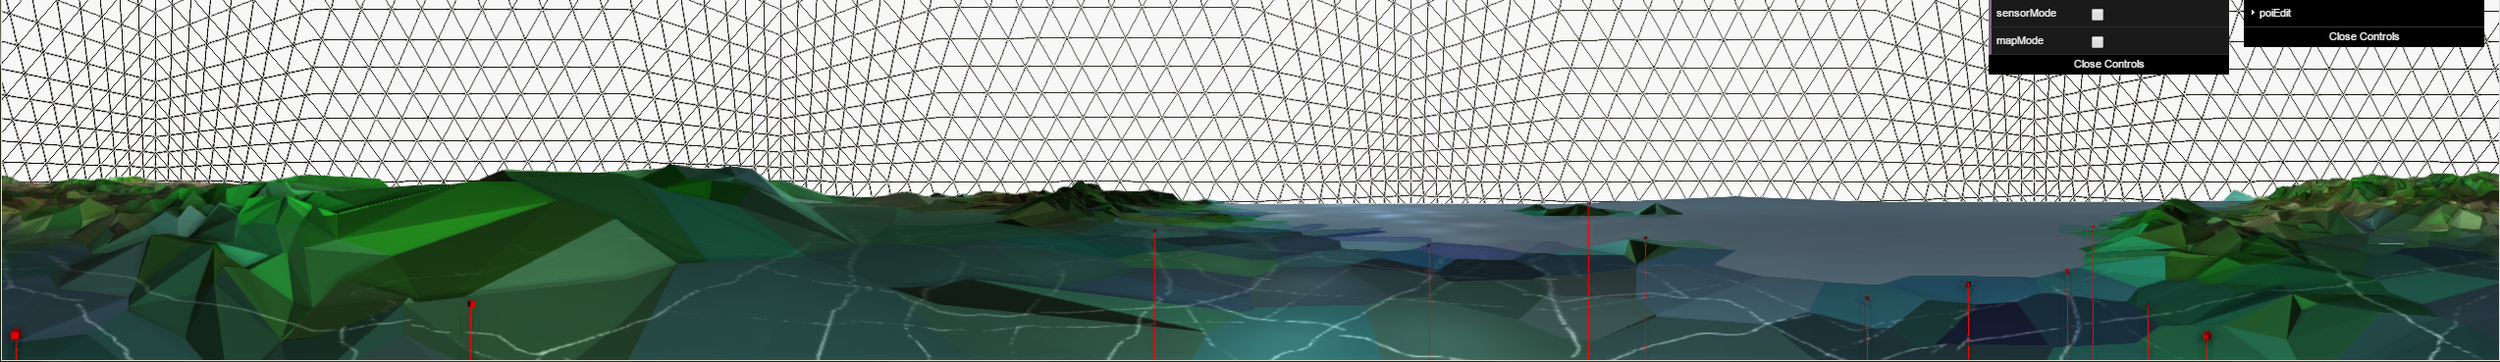 skyboxgeometry.png